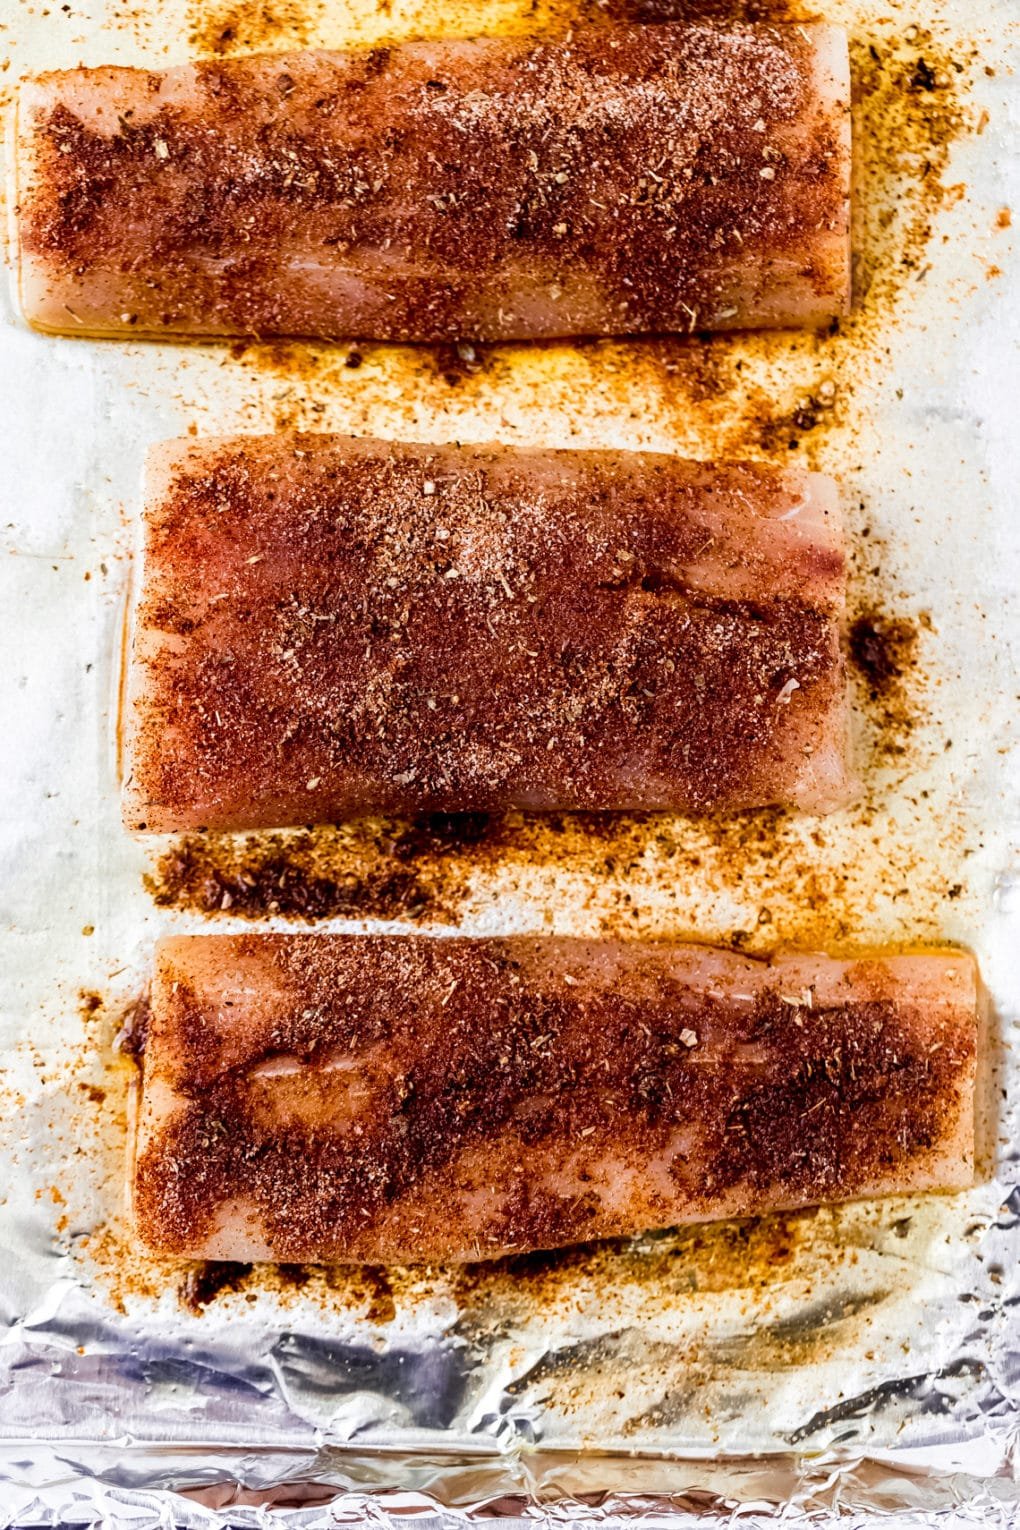 raw mahi mahi fillets coated in blackened seasoning